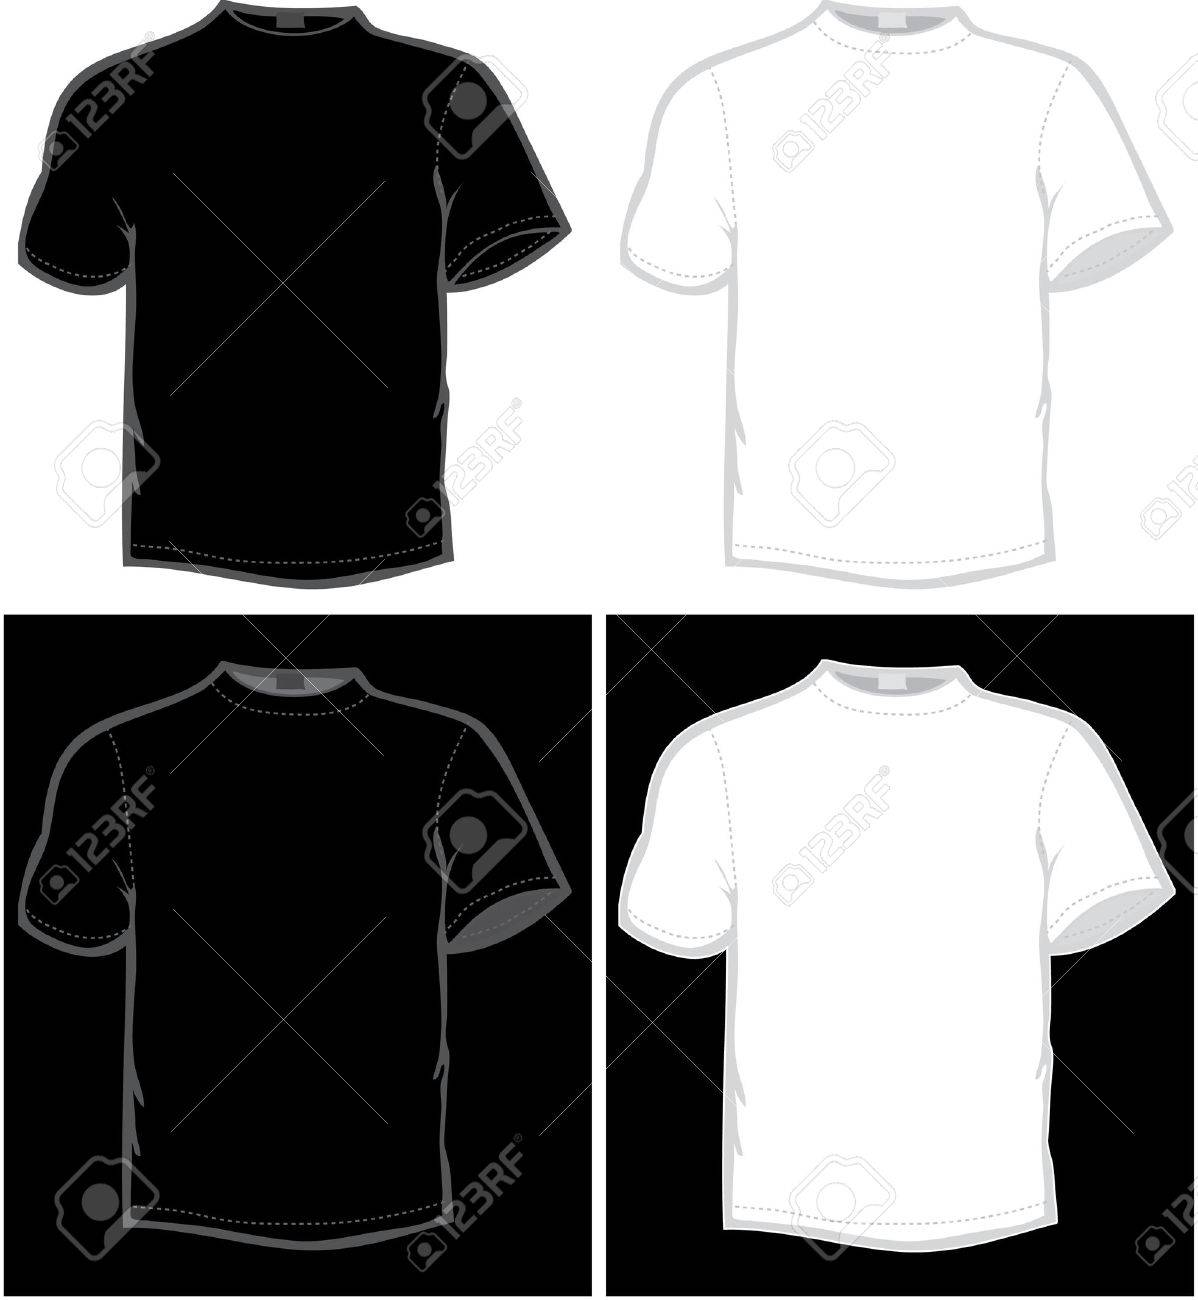 Black t shirt vector photoshop - Vector Vector T Shirt In Black And White Color